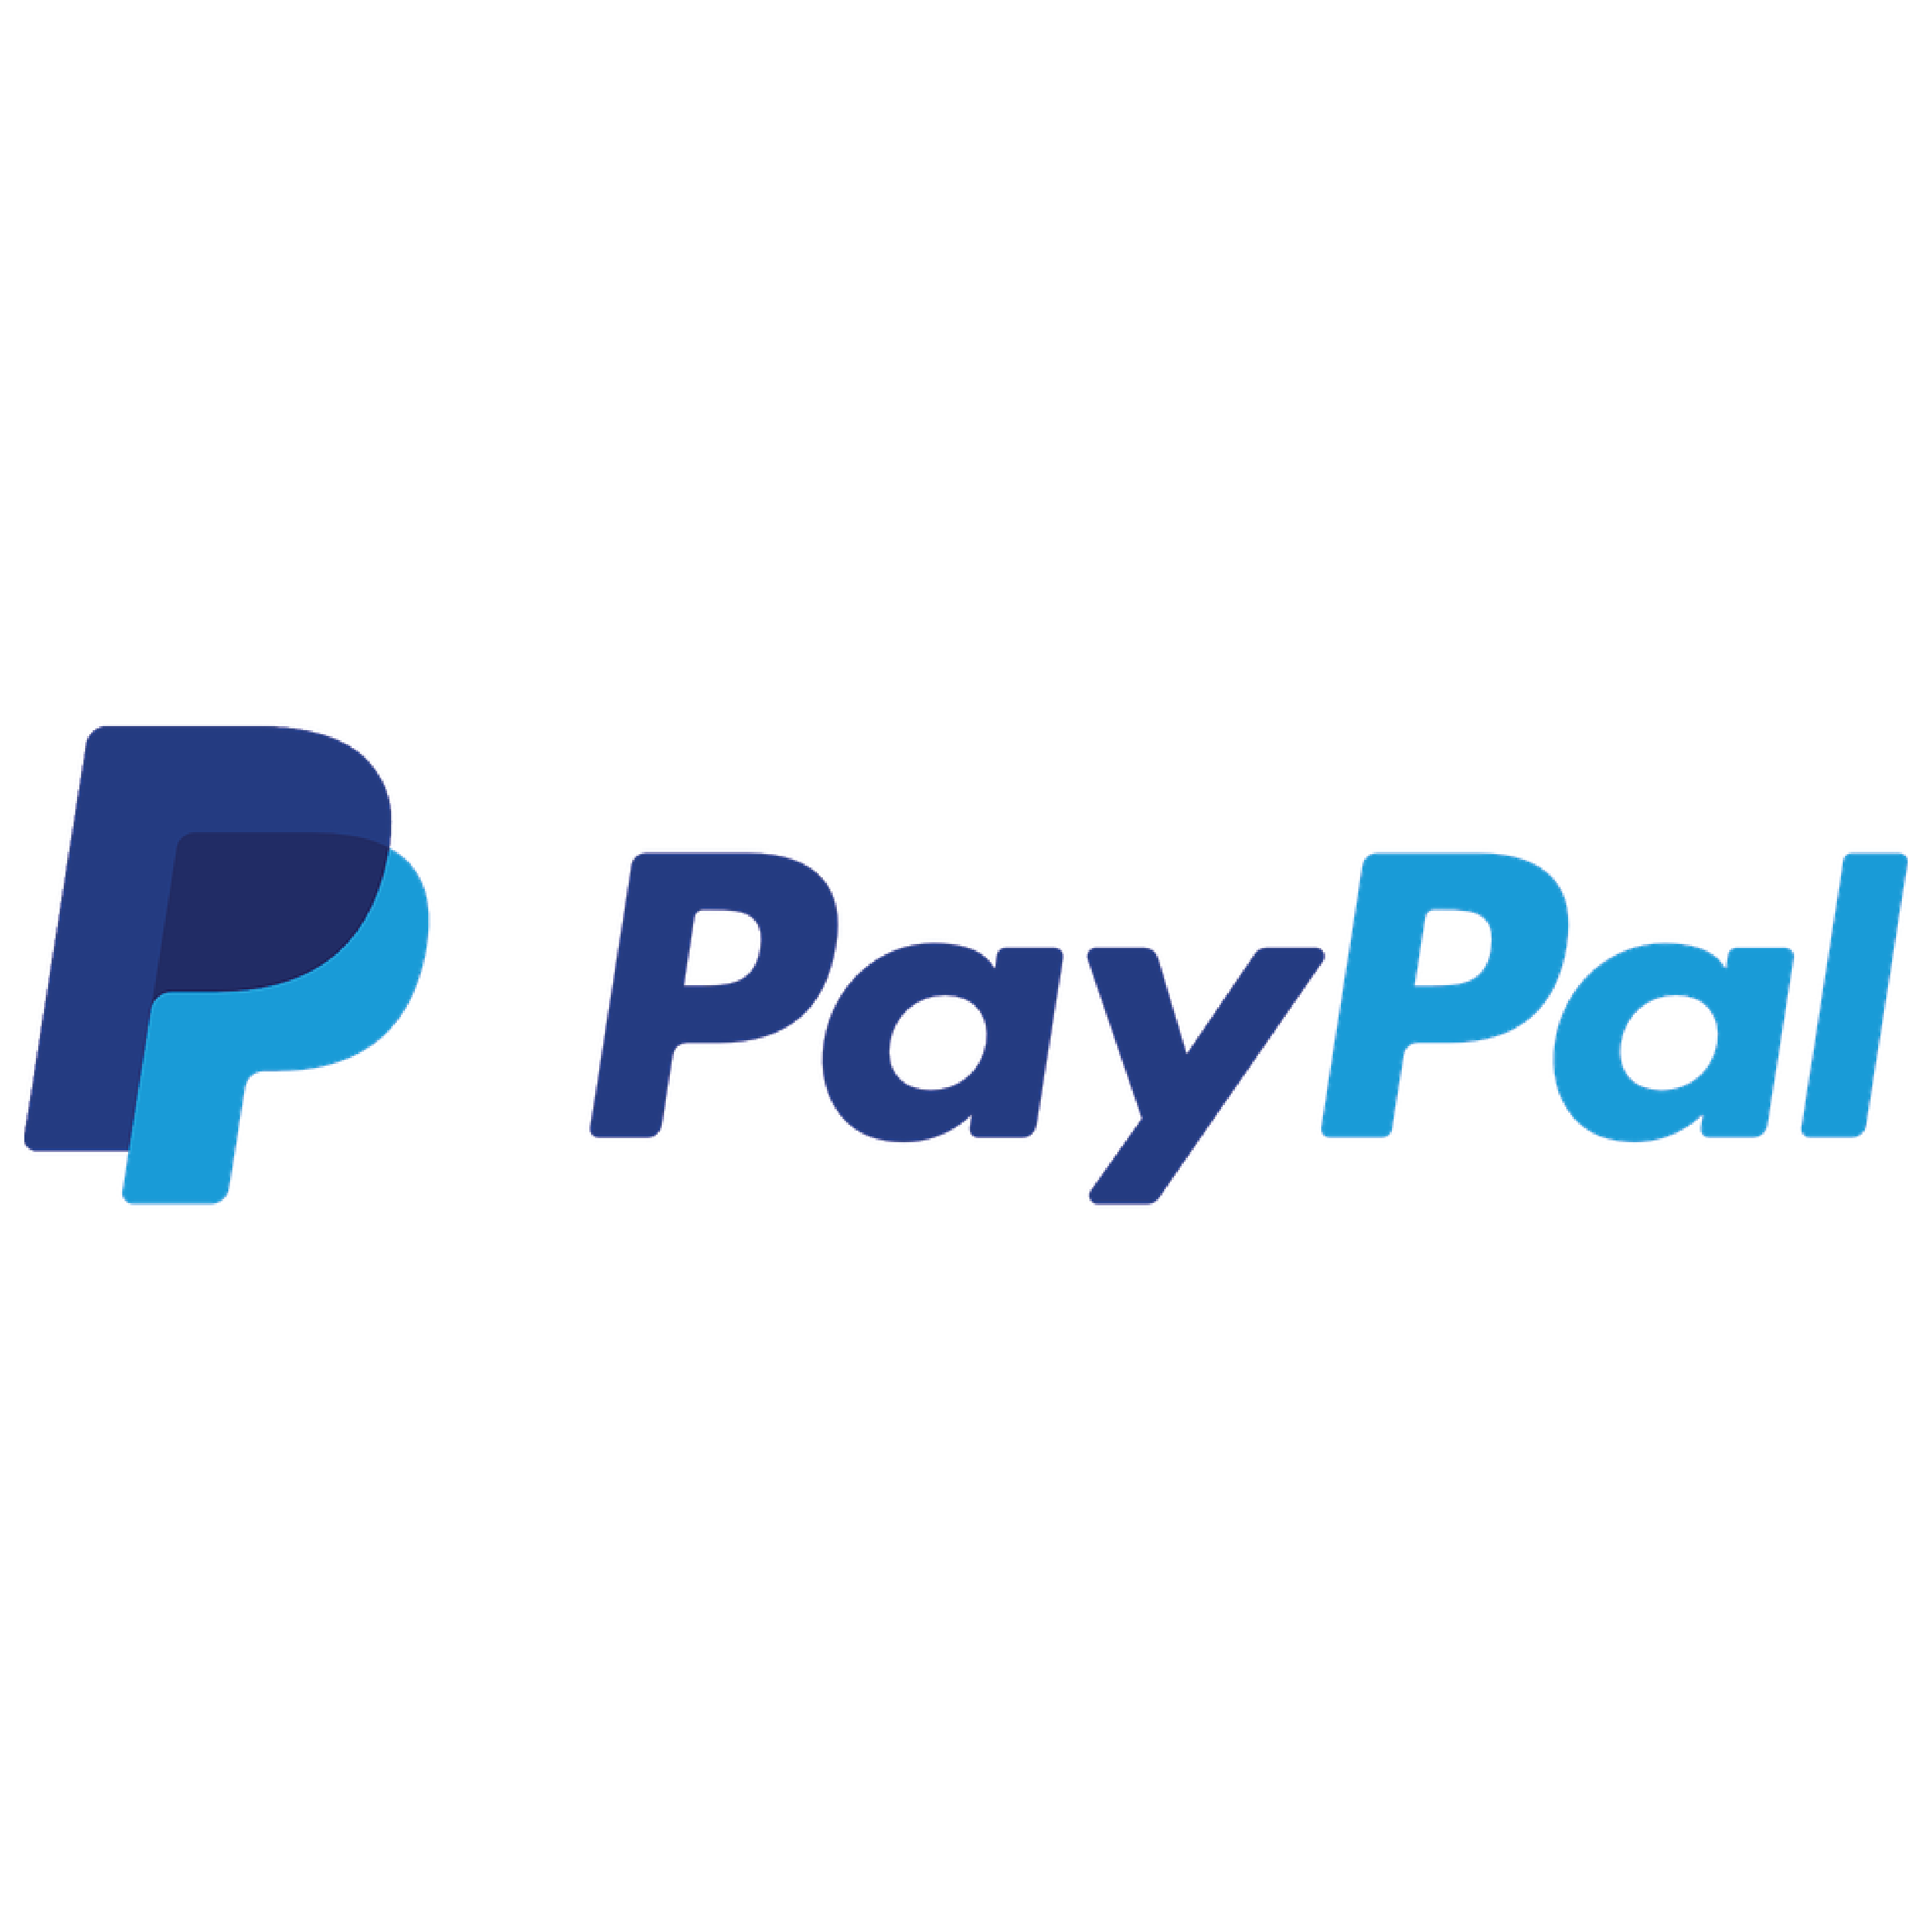 Paypal Shipedge Integration